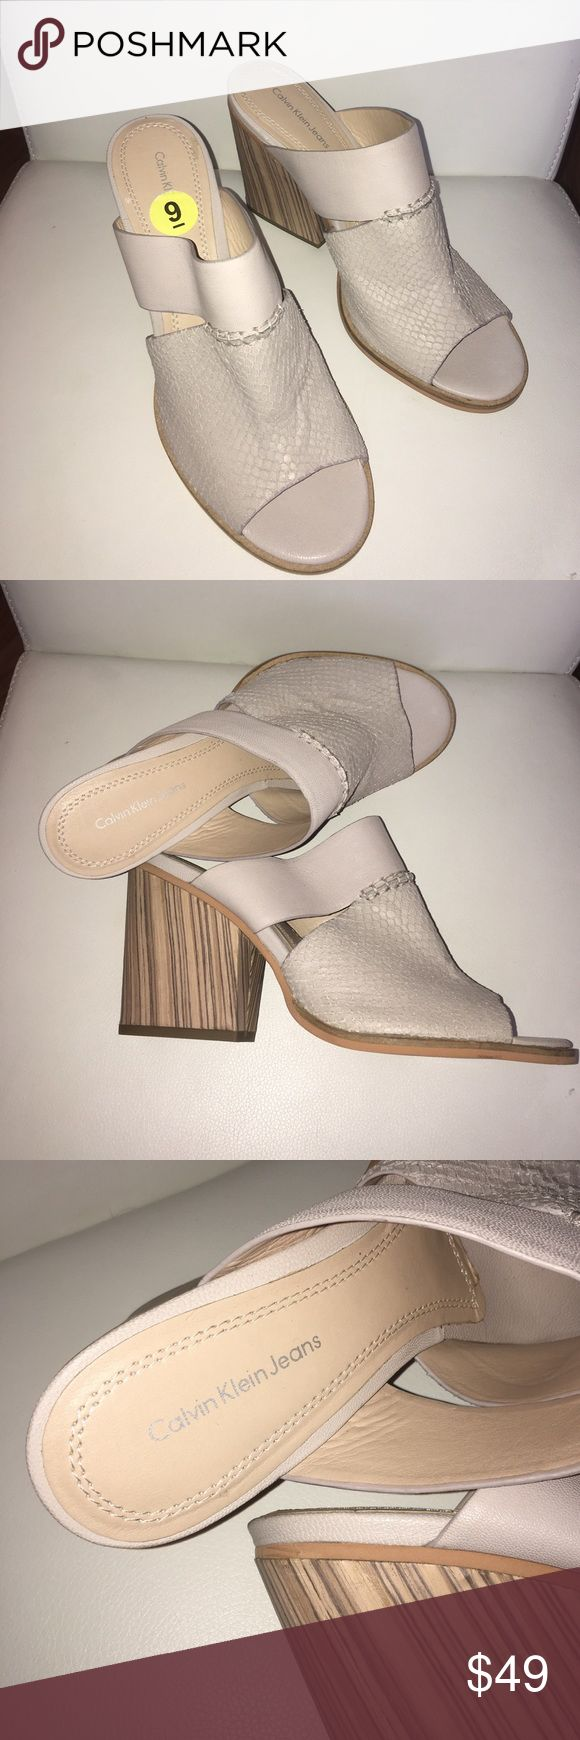 New Calvin Klein Jeans Open Toe Wedge 🎀 NWOB Calvin Klein Jeans NWOB beautiful open toe sandals in perfect condition 💕0134210987 Calvin Klein Jeans Shoes Wedges